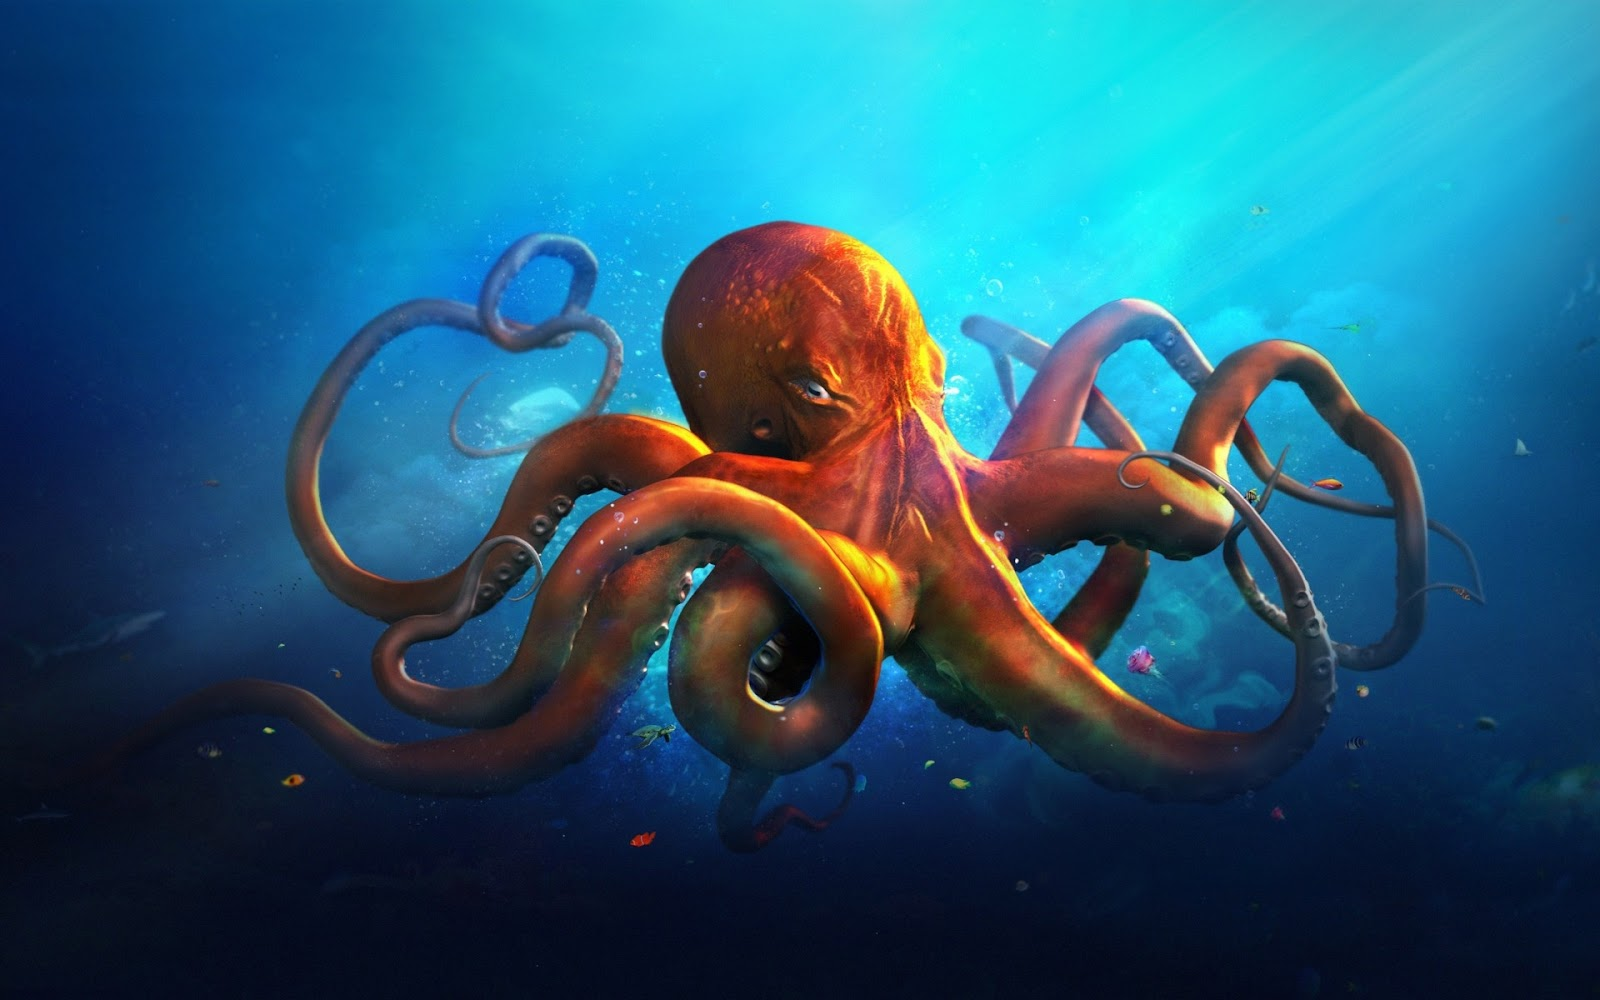 345573-octopus-wallpaper-hd-1.jpg